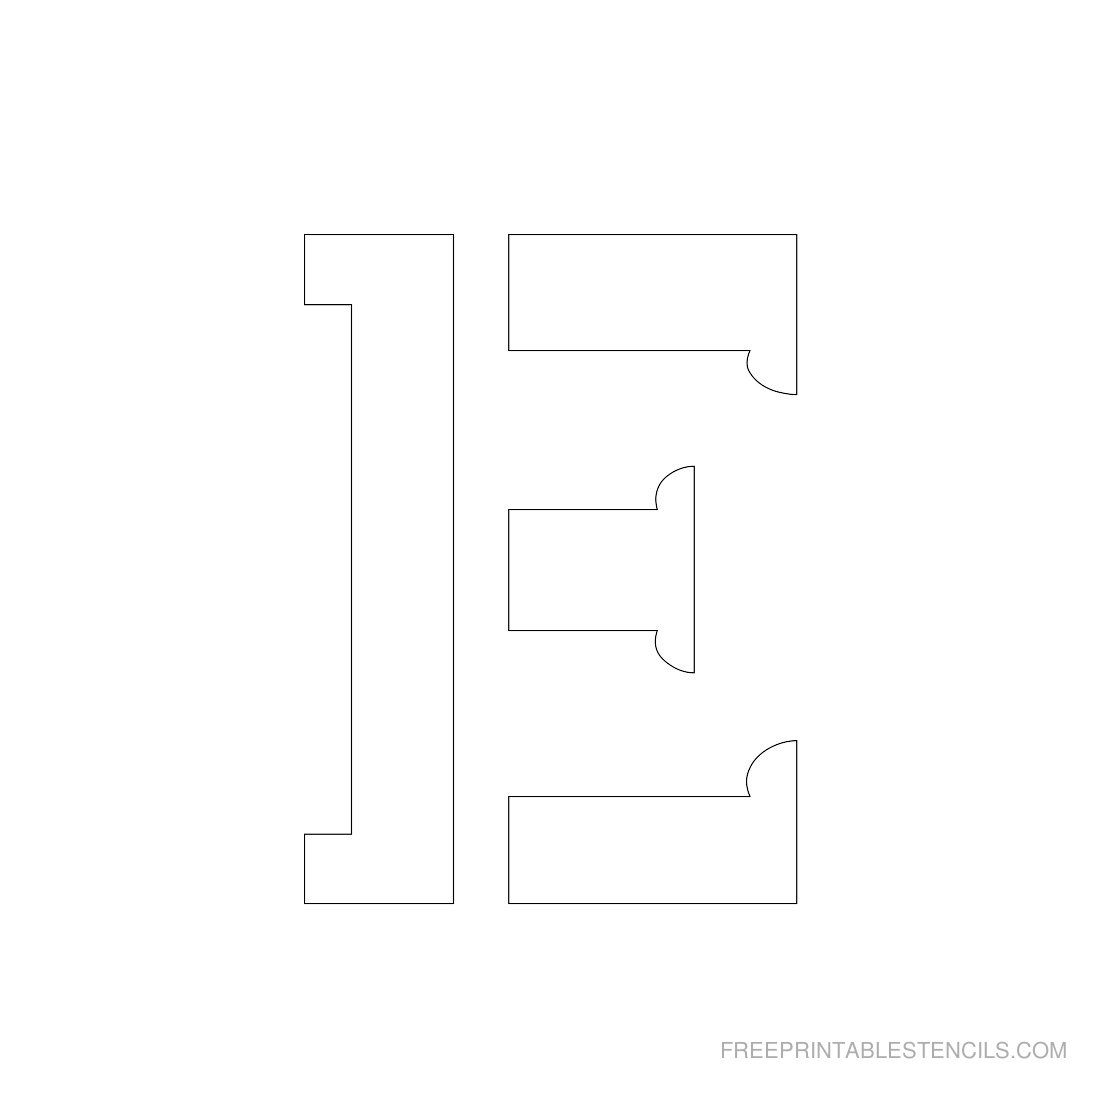 Printable 3 inch letter stencil e crafts pinterest stenciling printable 3 inch letter stencil e spiritdancerdesigns Image collections